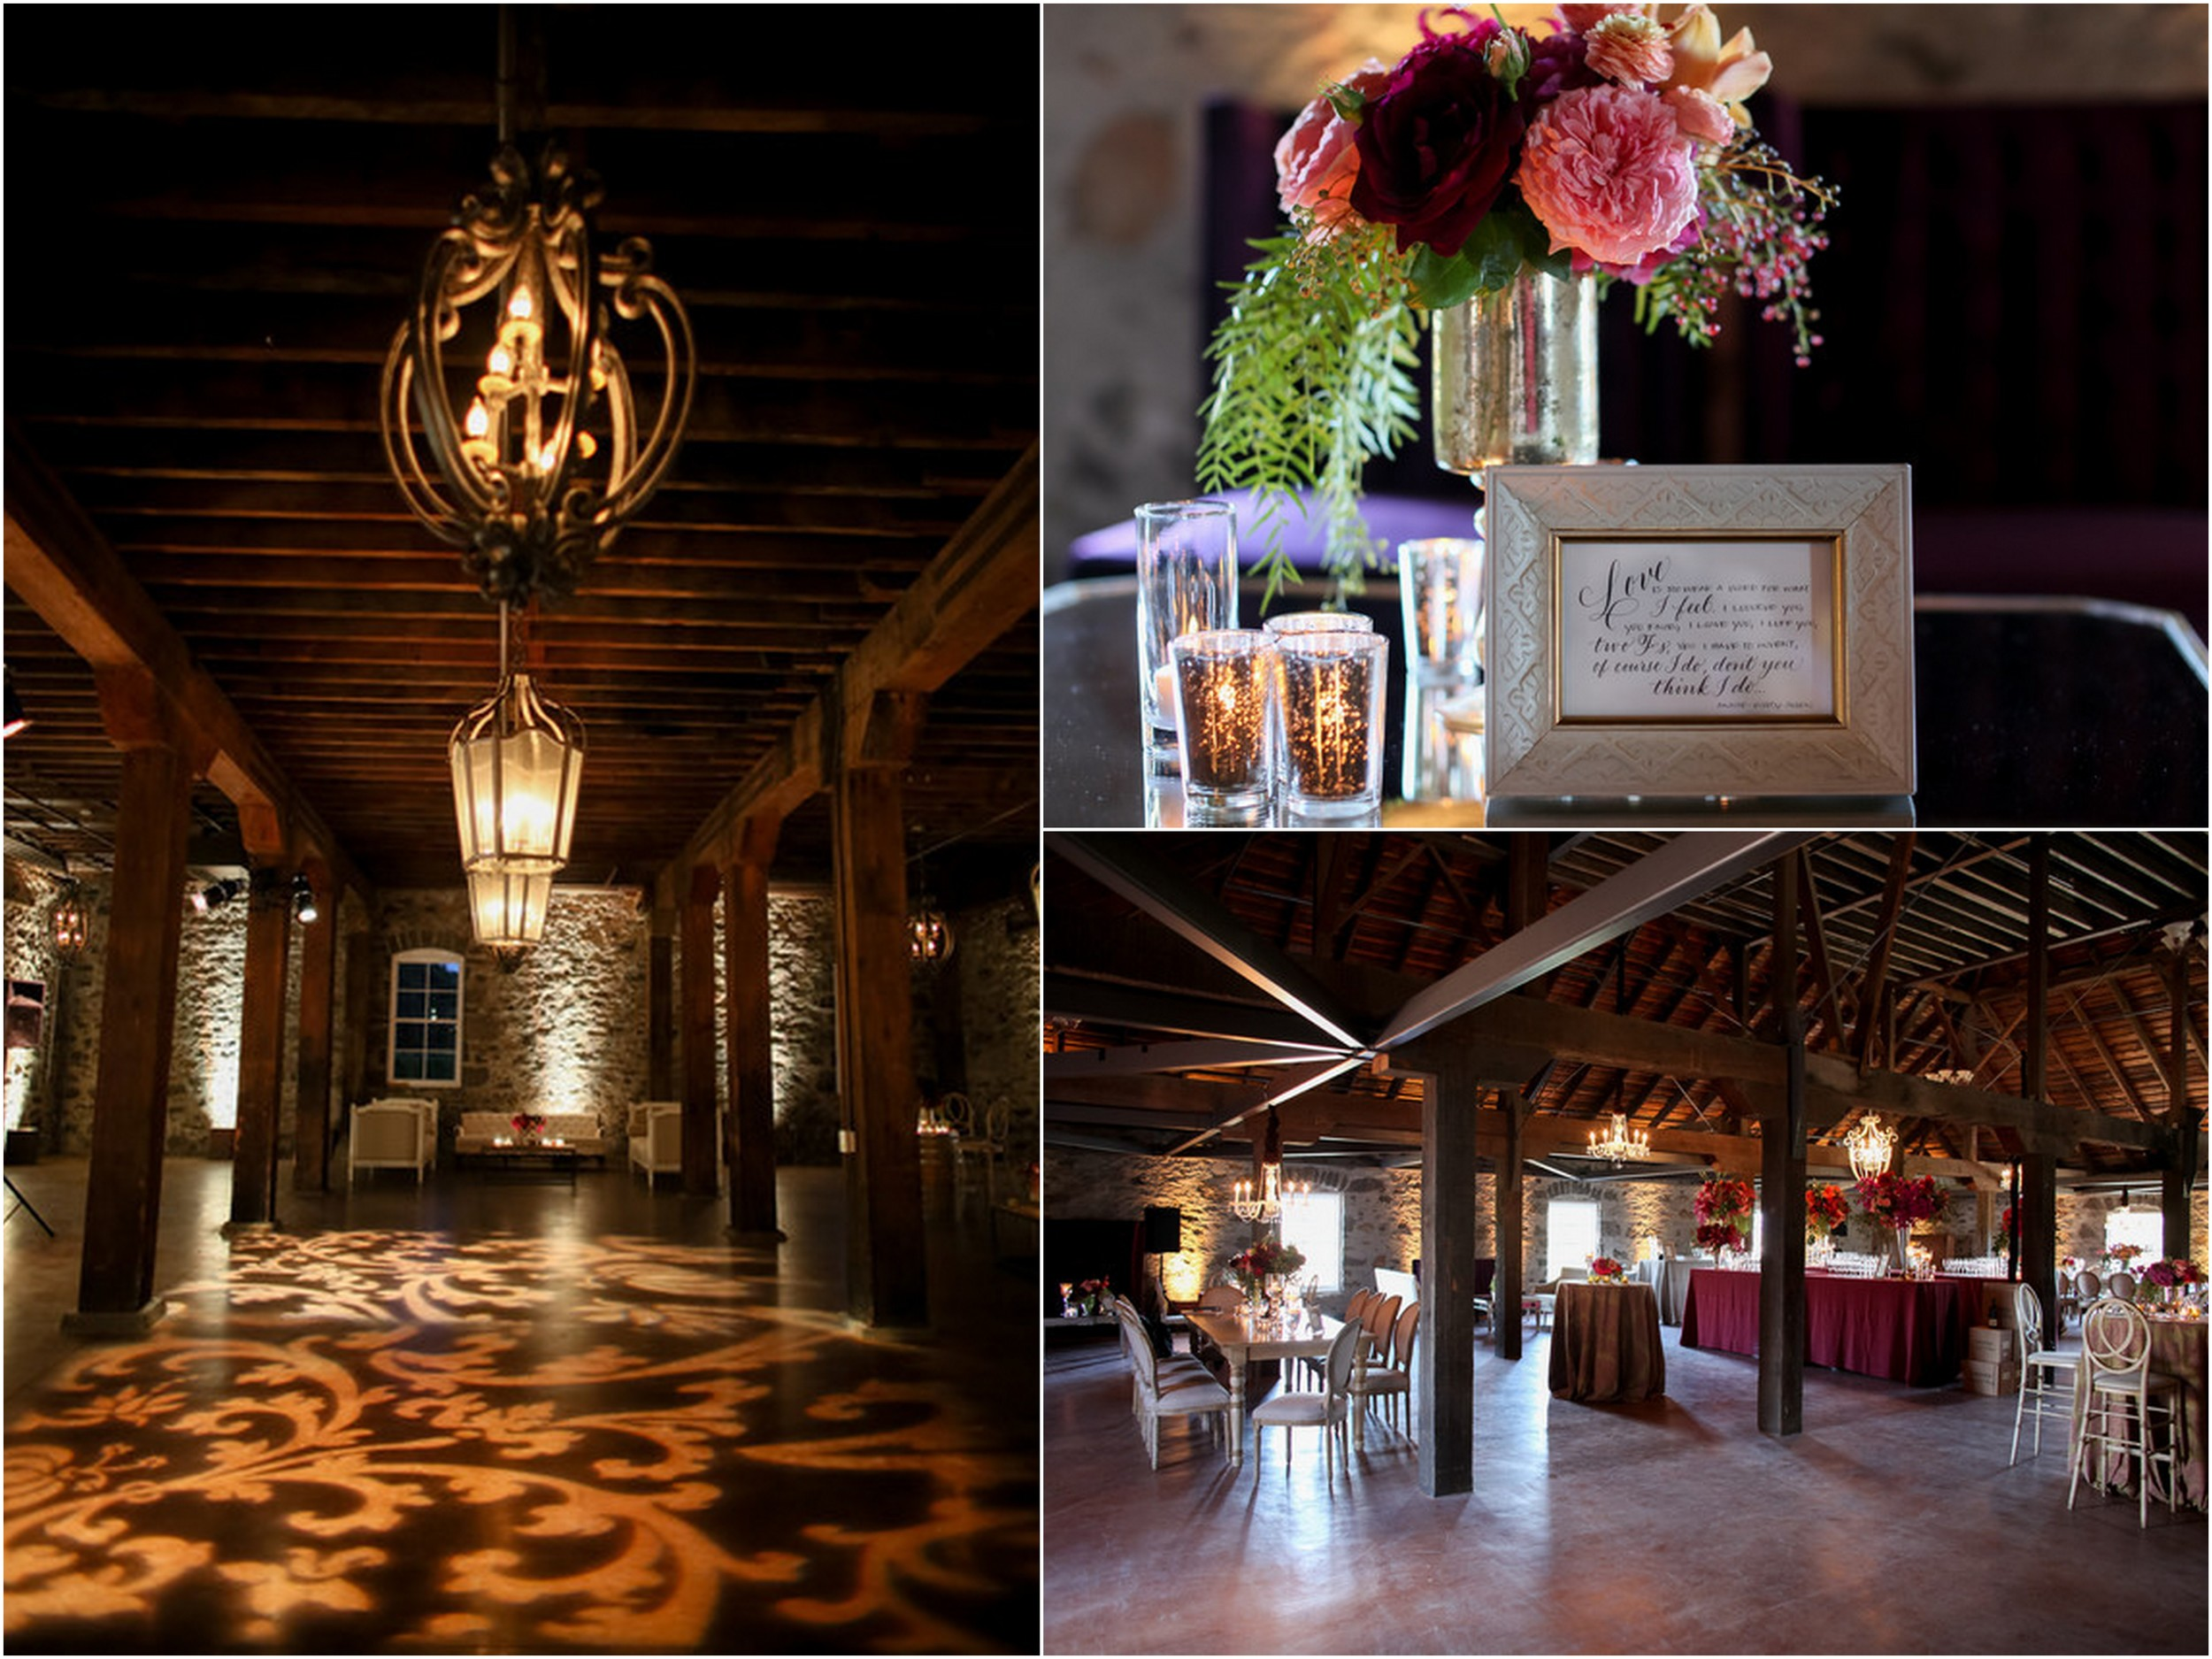 L'Relyea Events - Event Planning & Design- Trione Winery, CA  Wedding venues in Wine Country